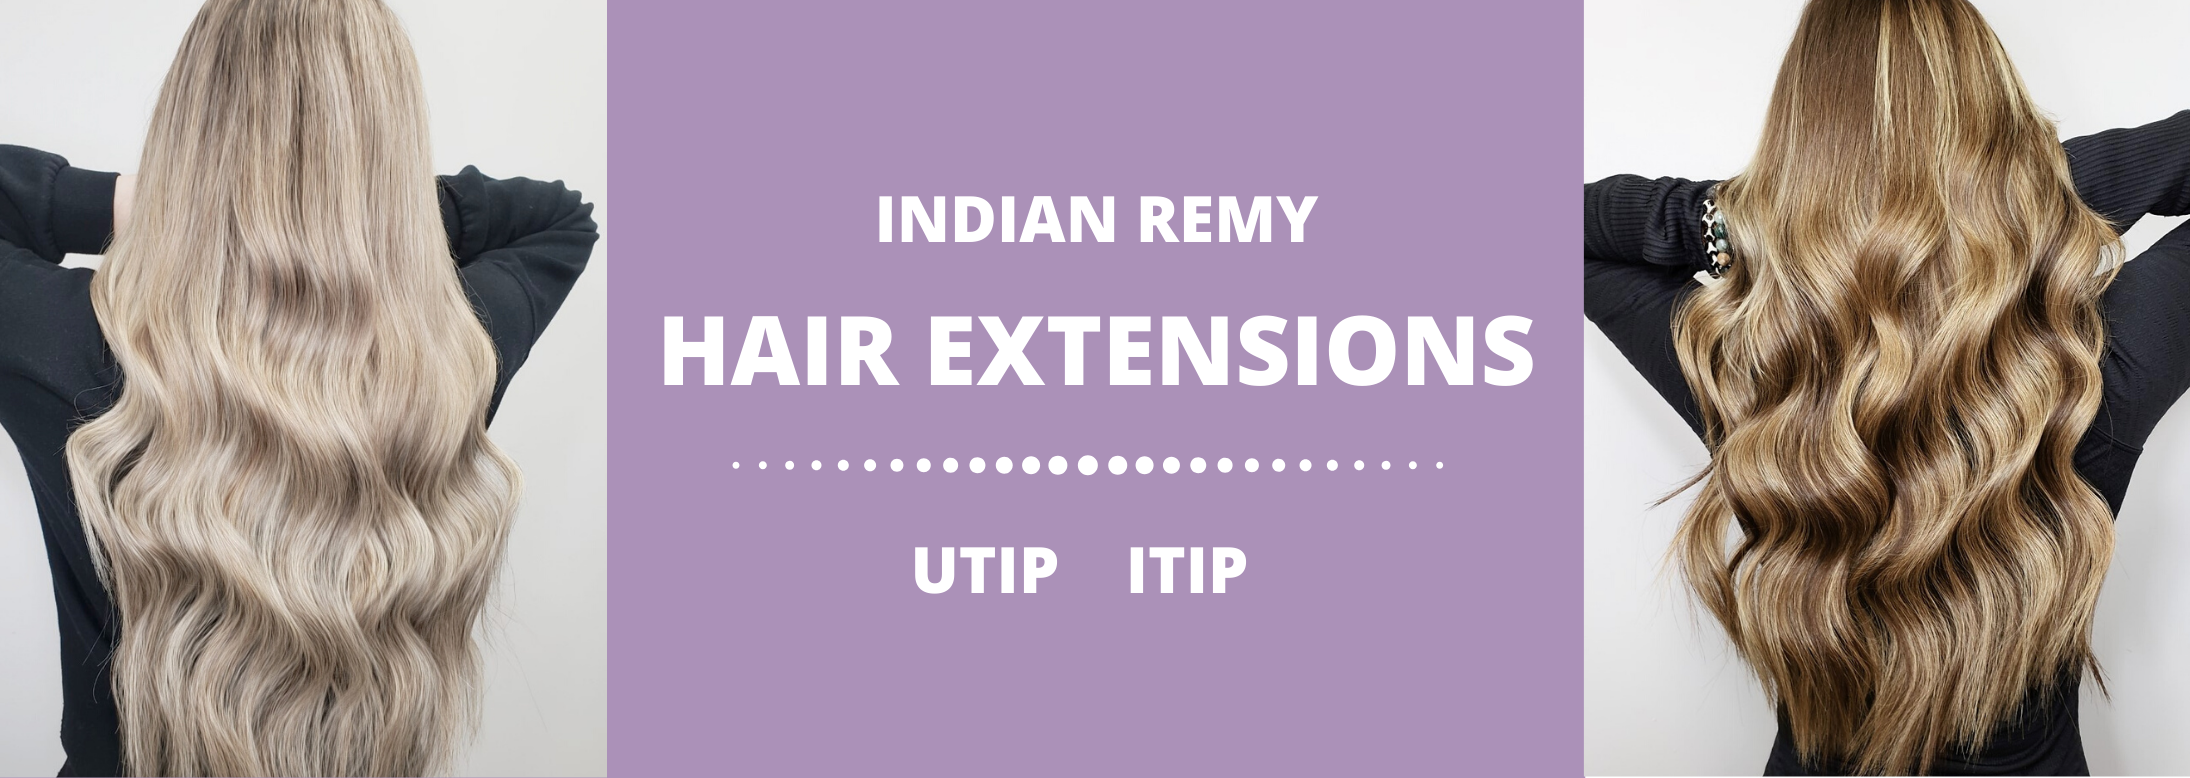 indian-remy-hair-banner.png